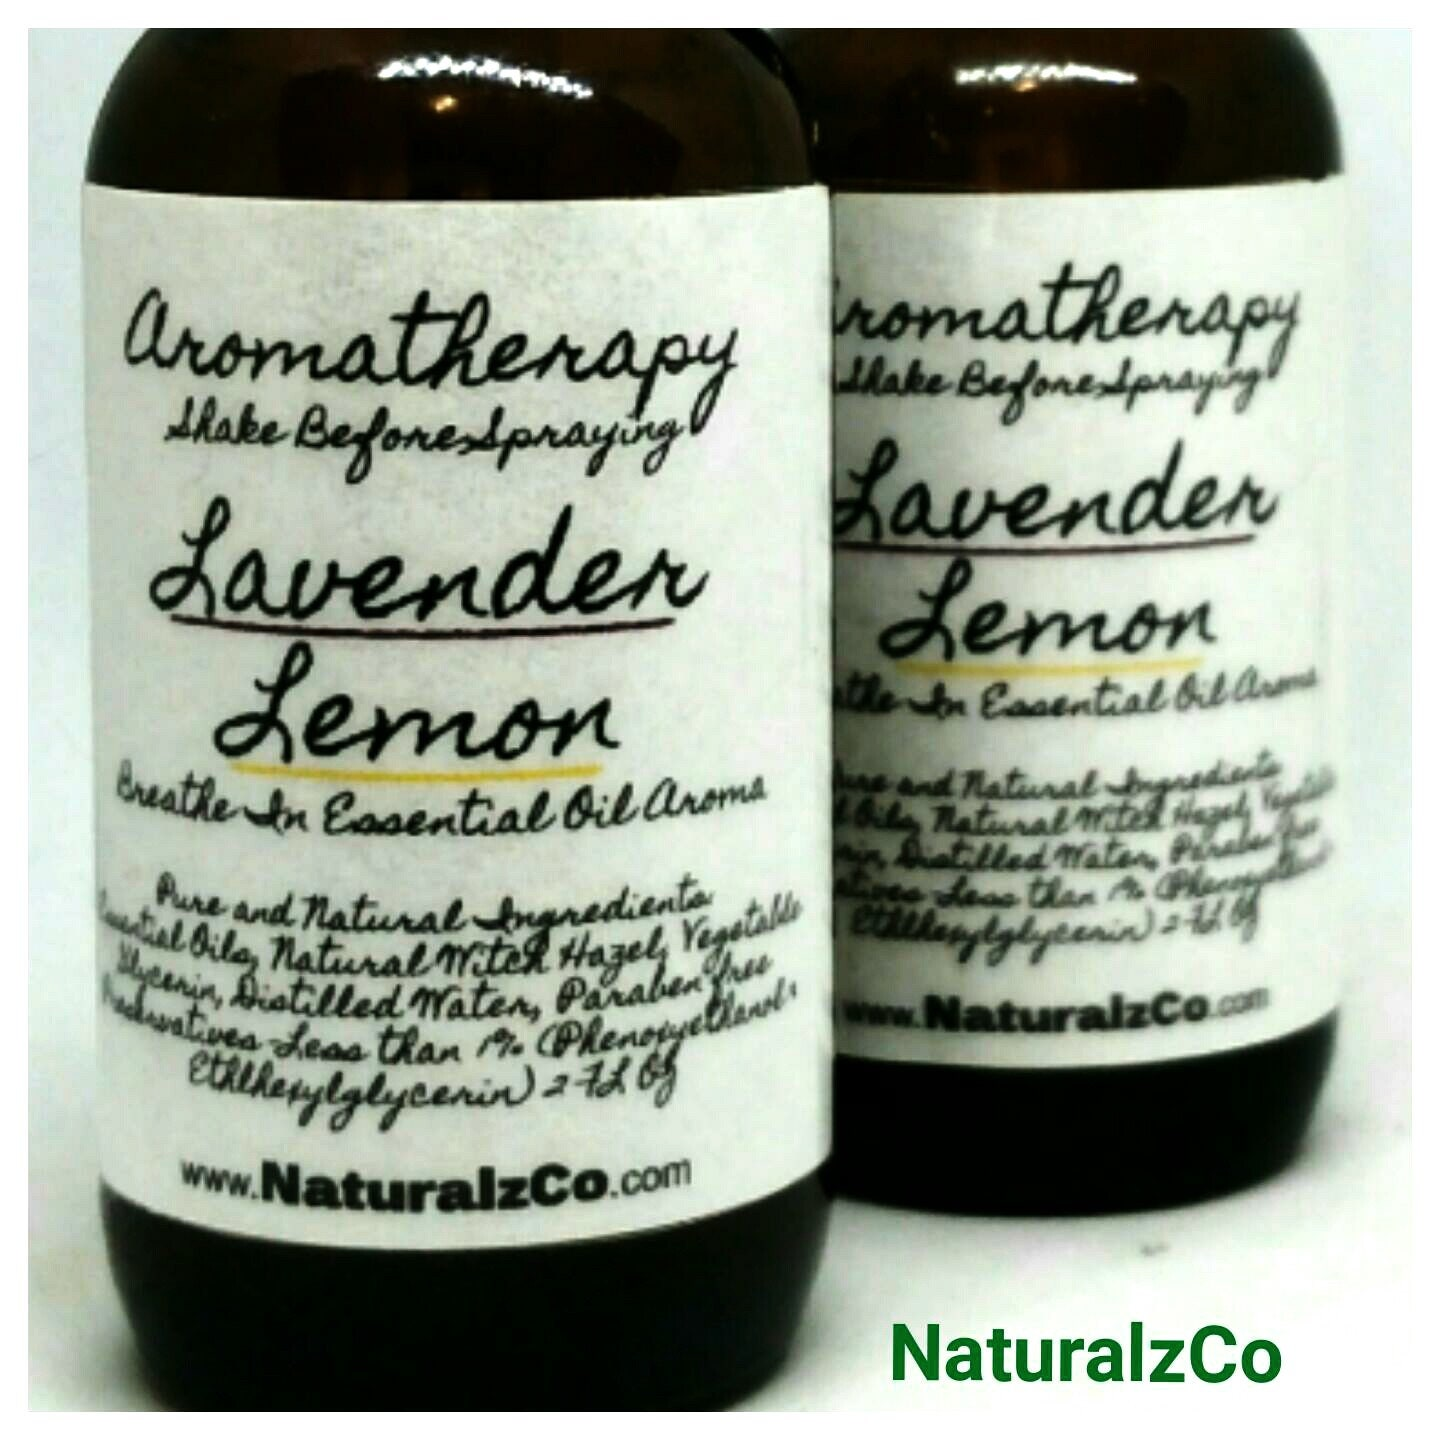 Lavender Lemon Spray Aromatherapy Room Linen Natural Essential Oil Aroma 2 Oz Bottle Naturalzco